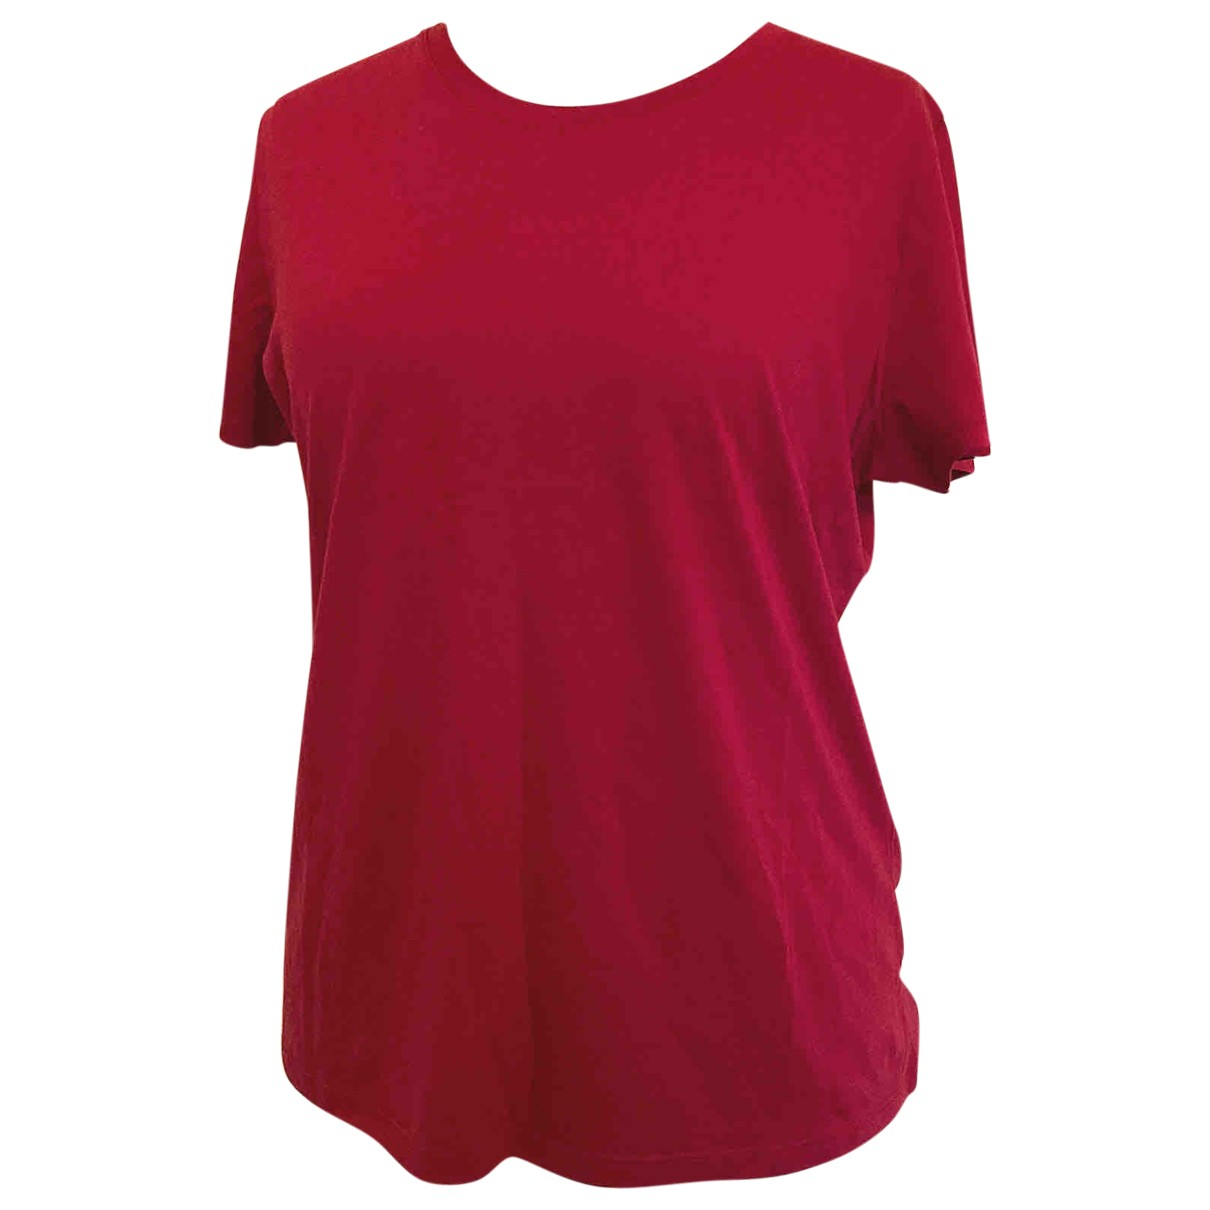 Vince \N Red Cotton  top for Women XL International